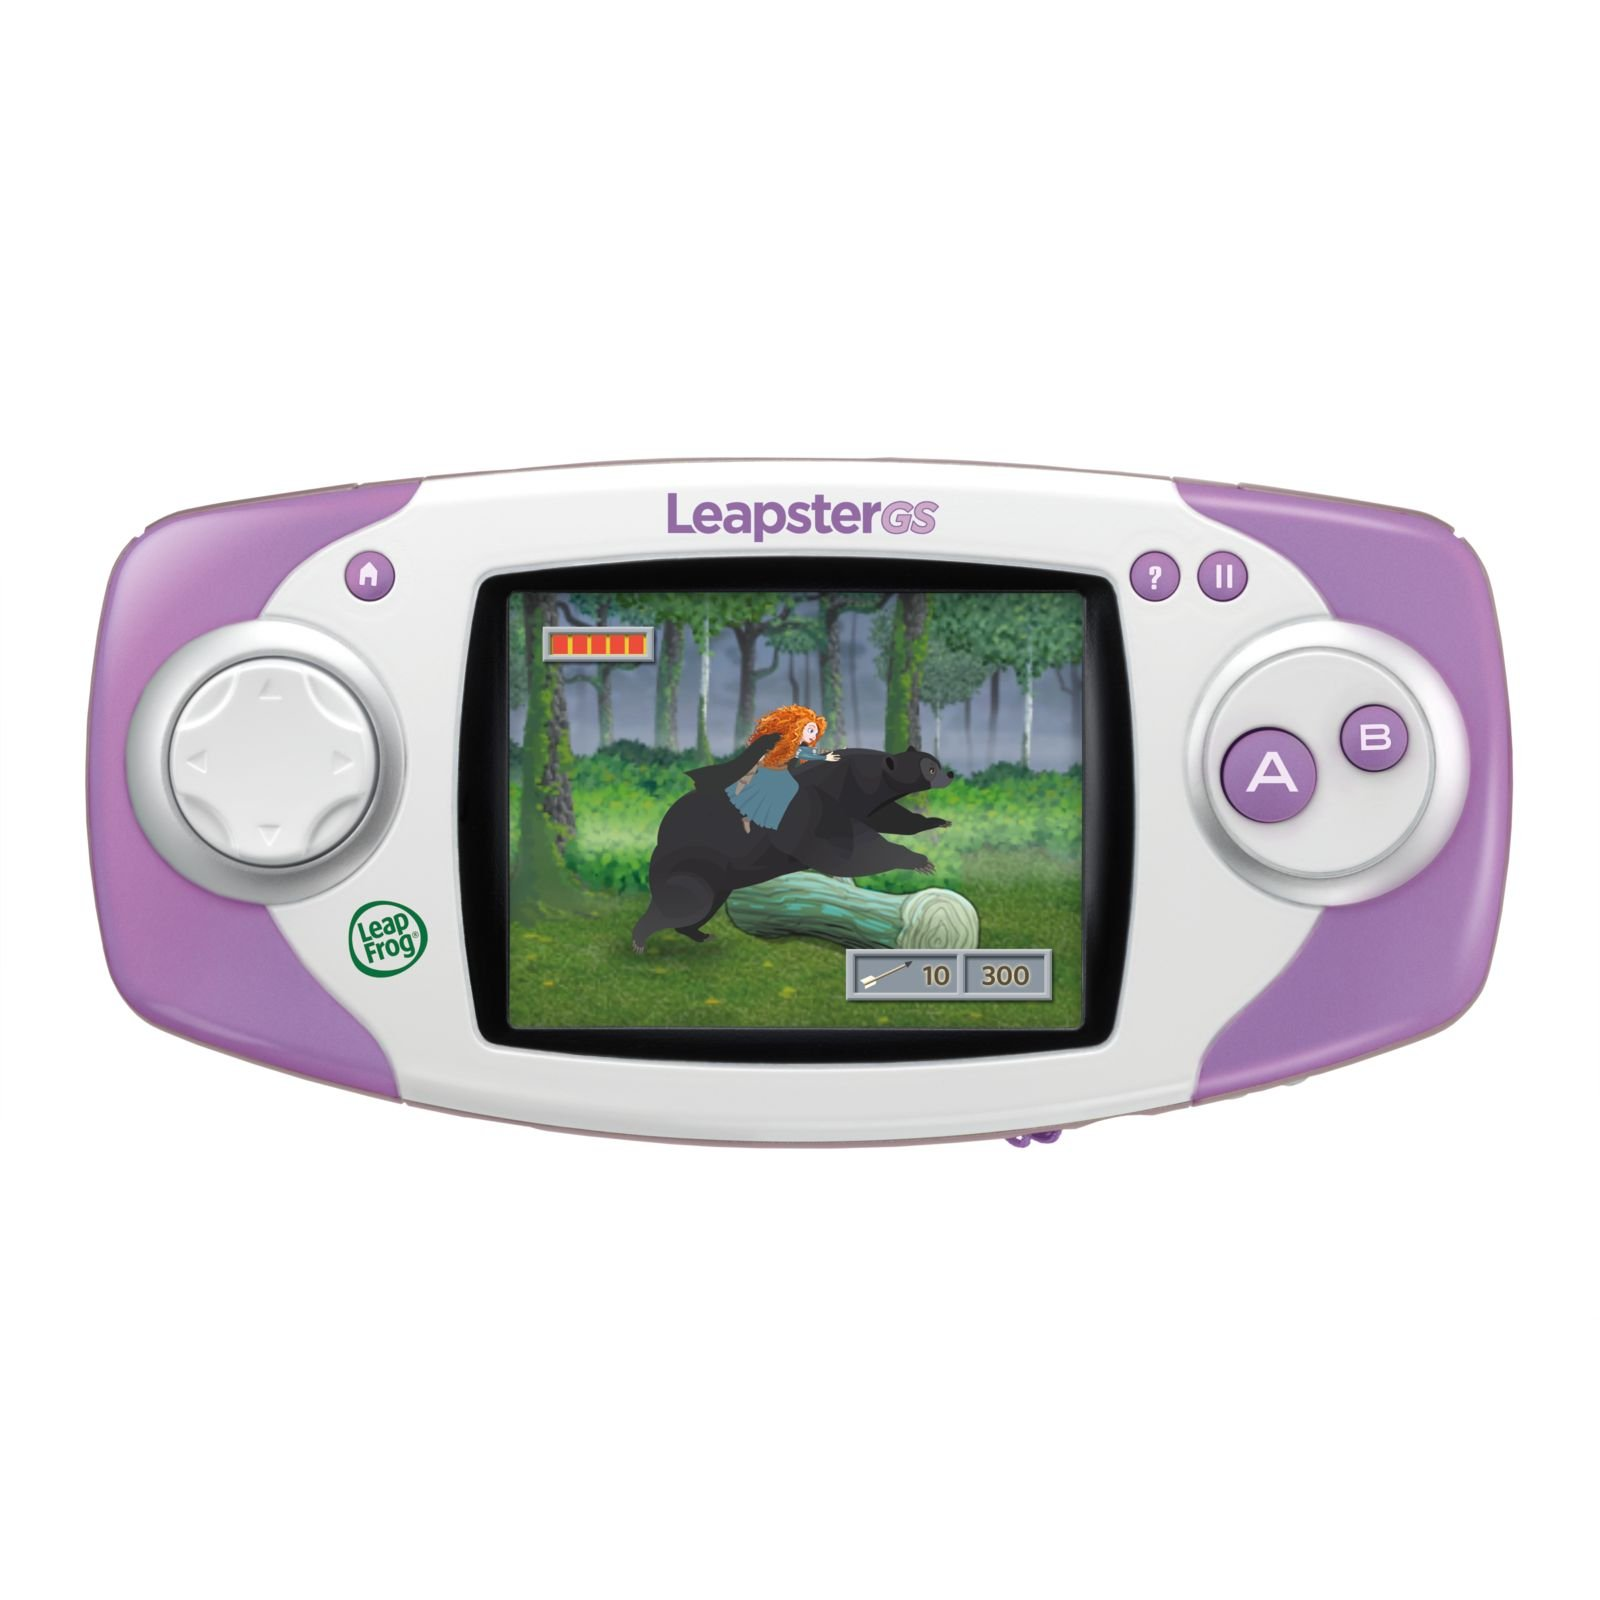 LeapFrog Leapster GS Explorer (Purple) by LeapFrog